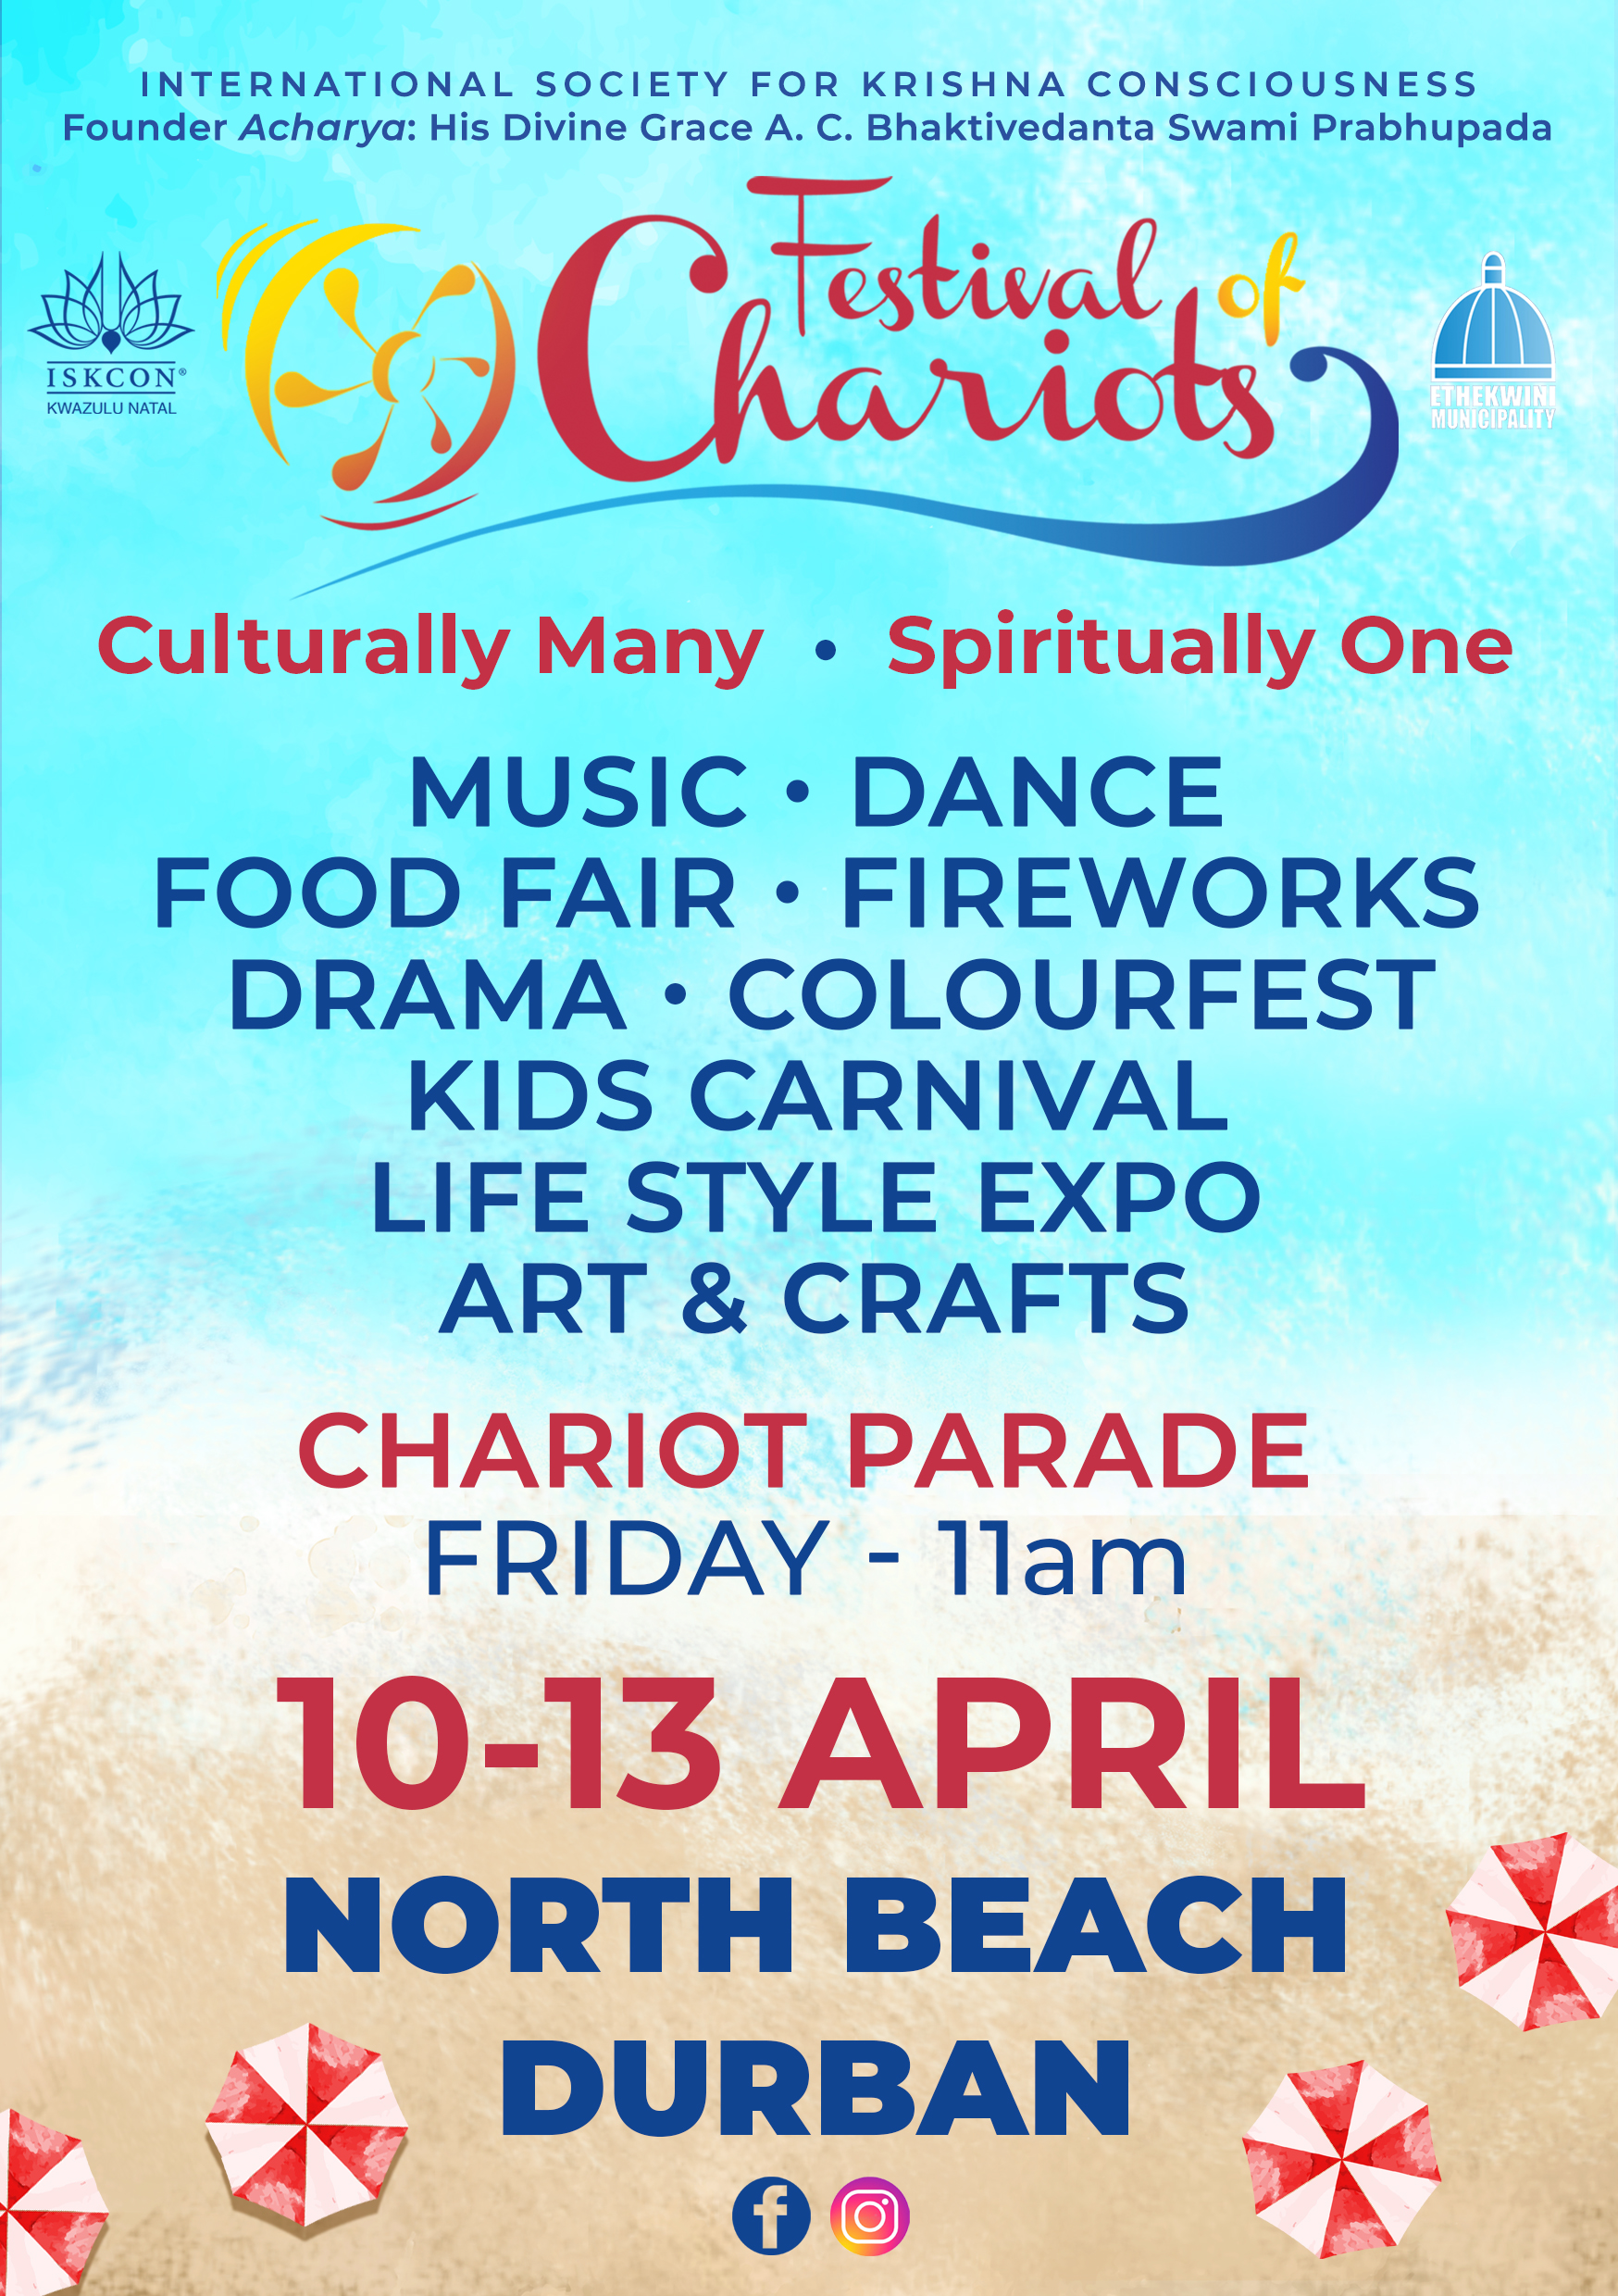 2020 Durban Festival of Chariots